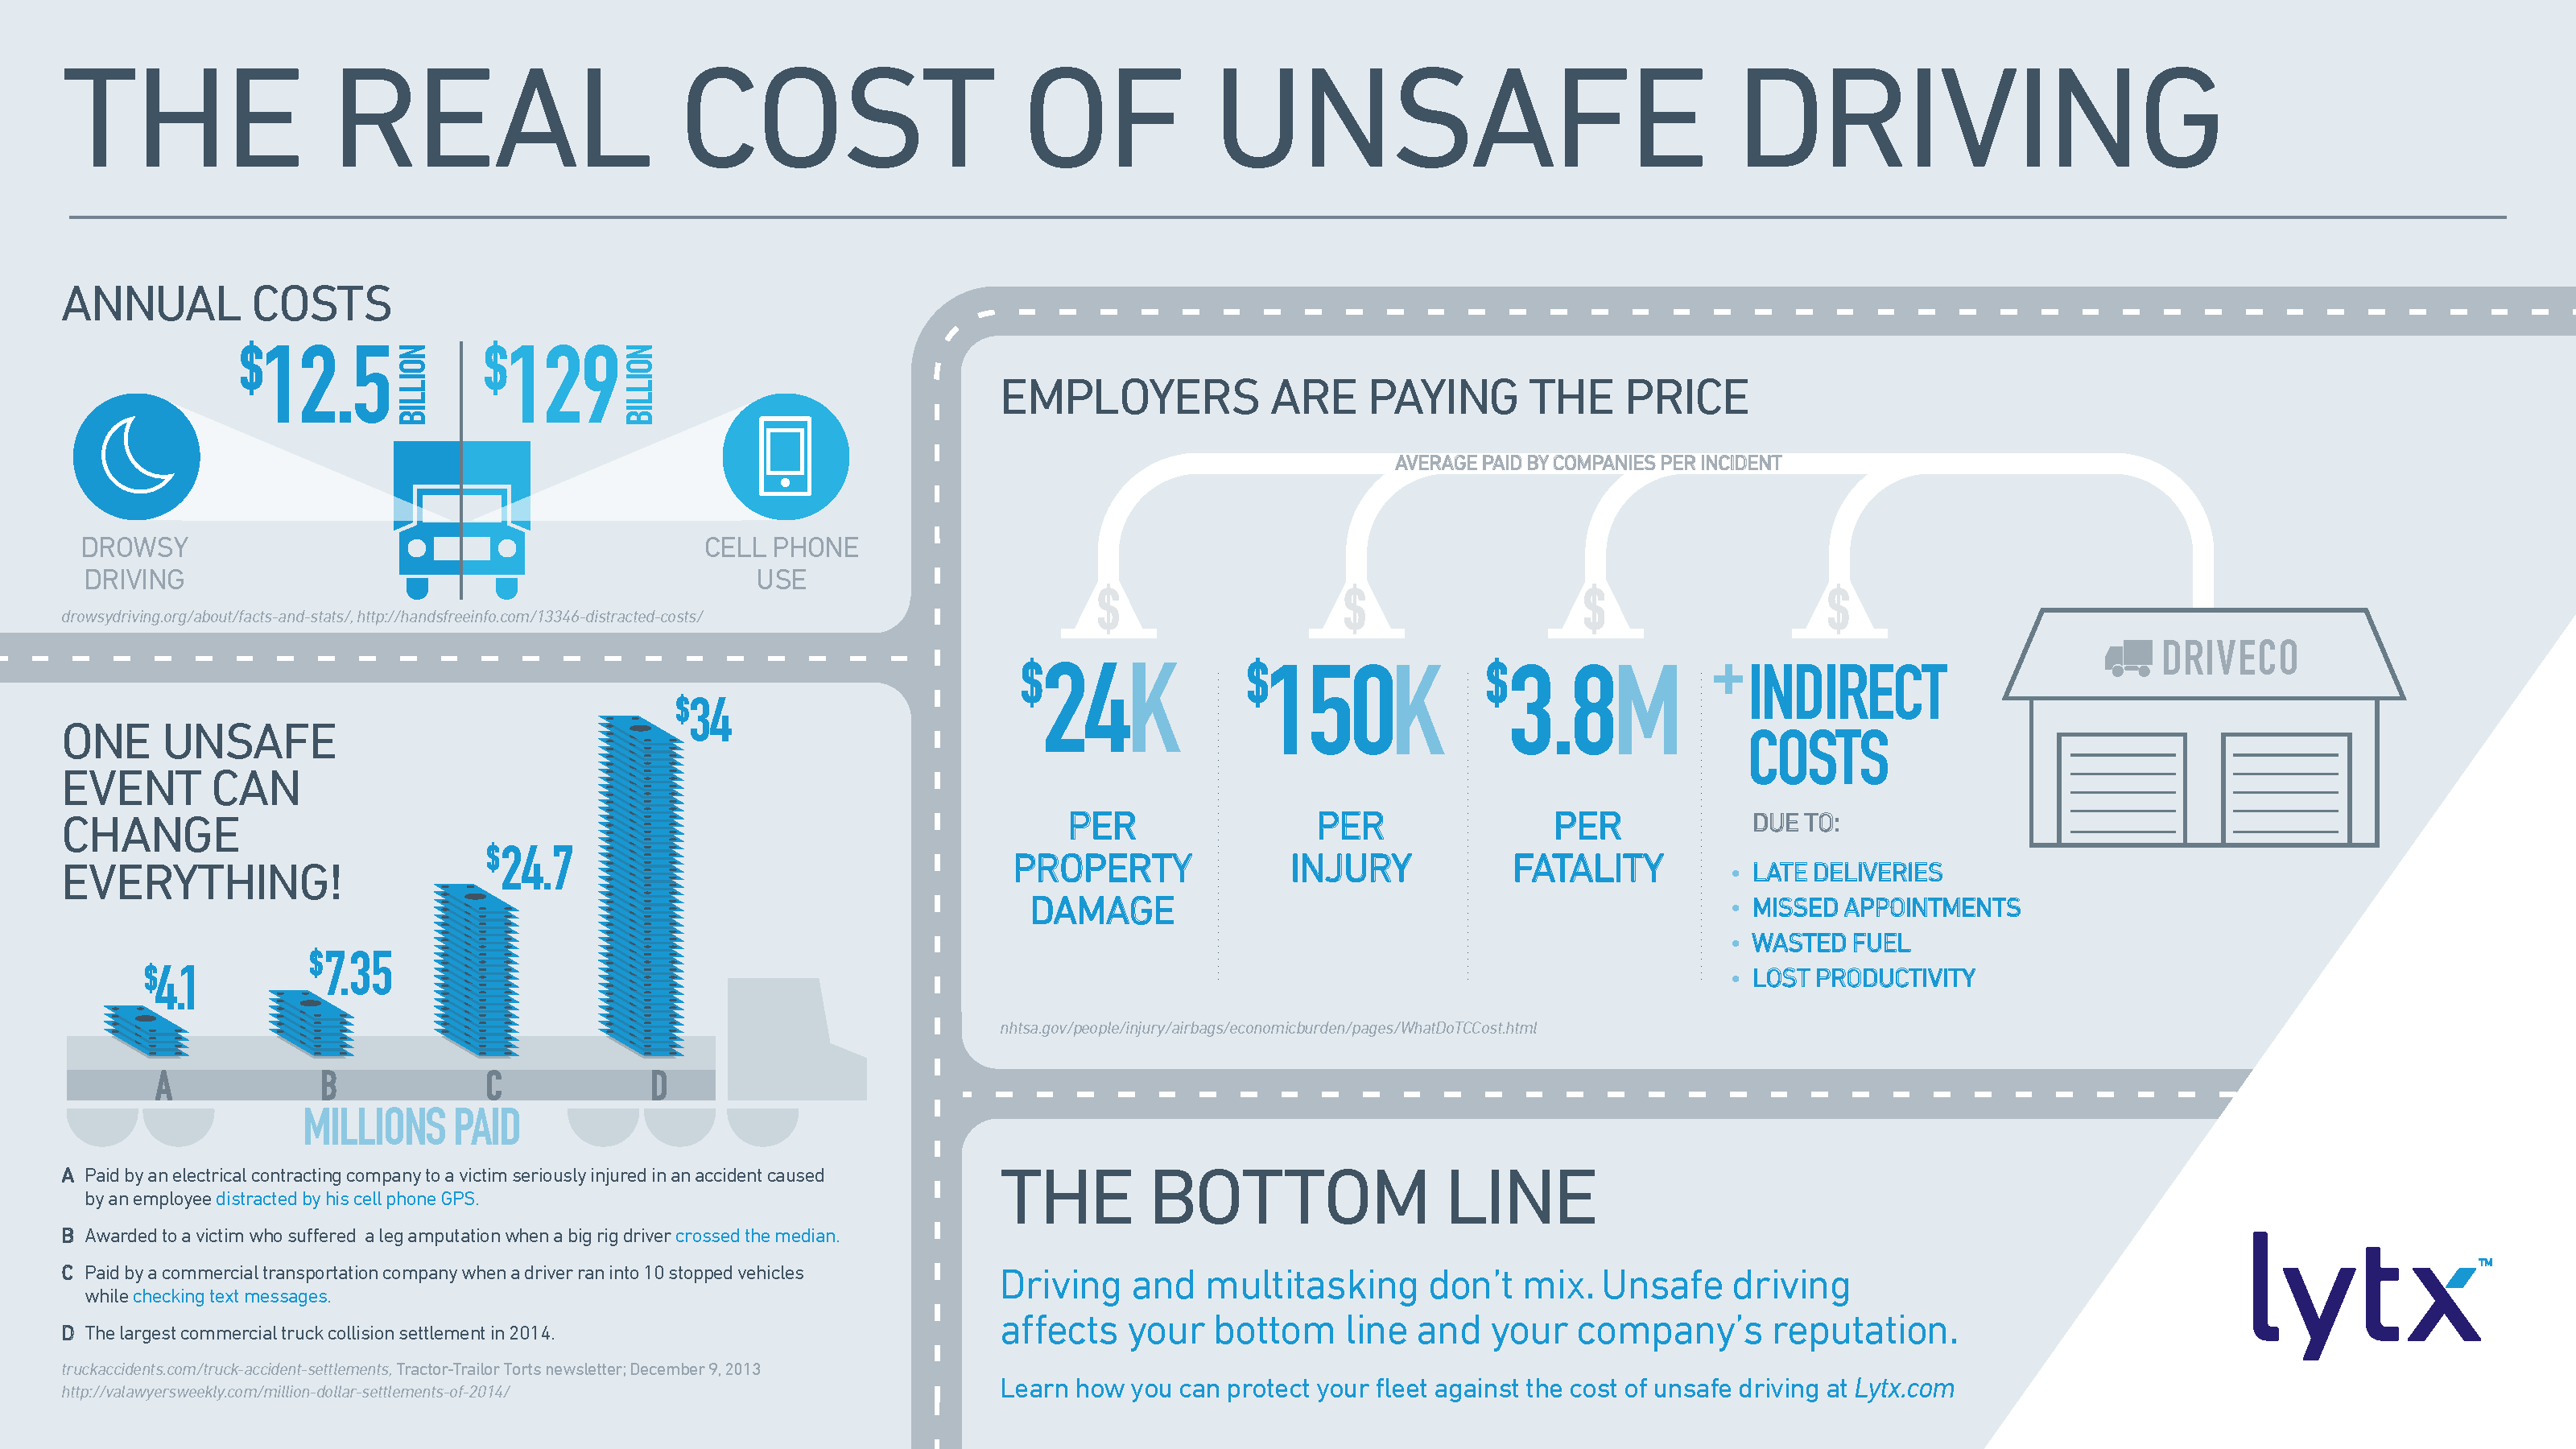 The Real Cost of Unsafe Driving